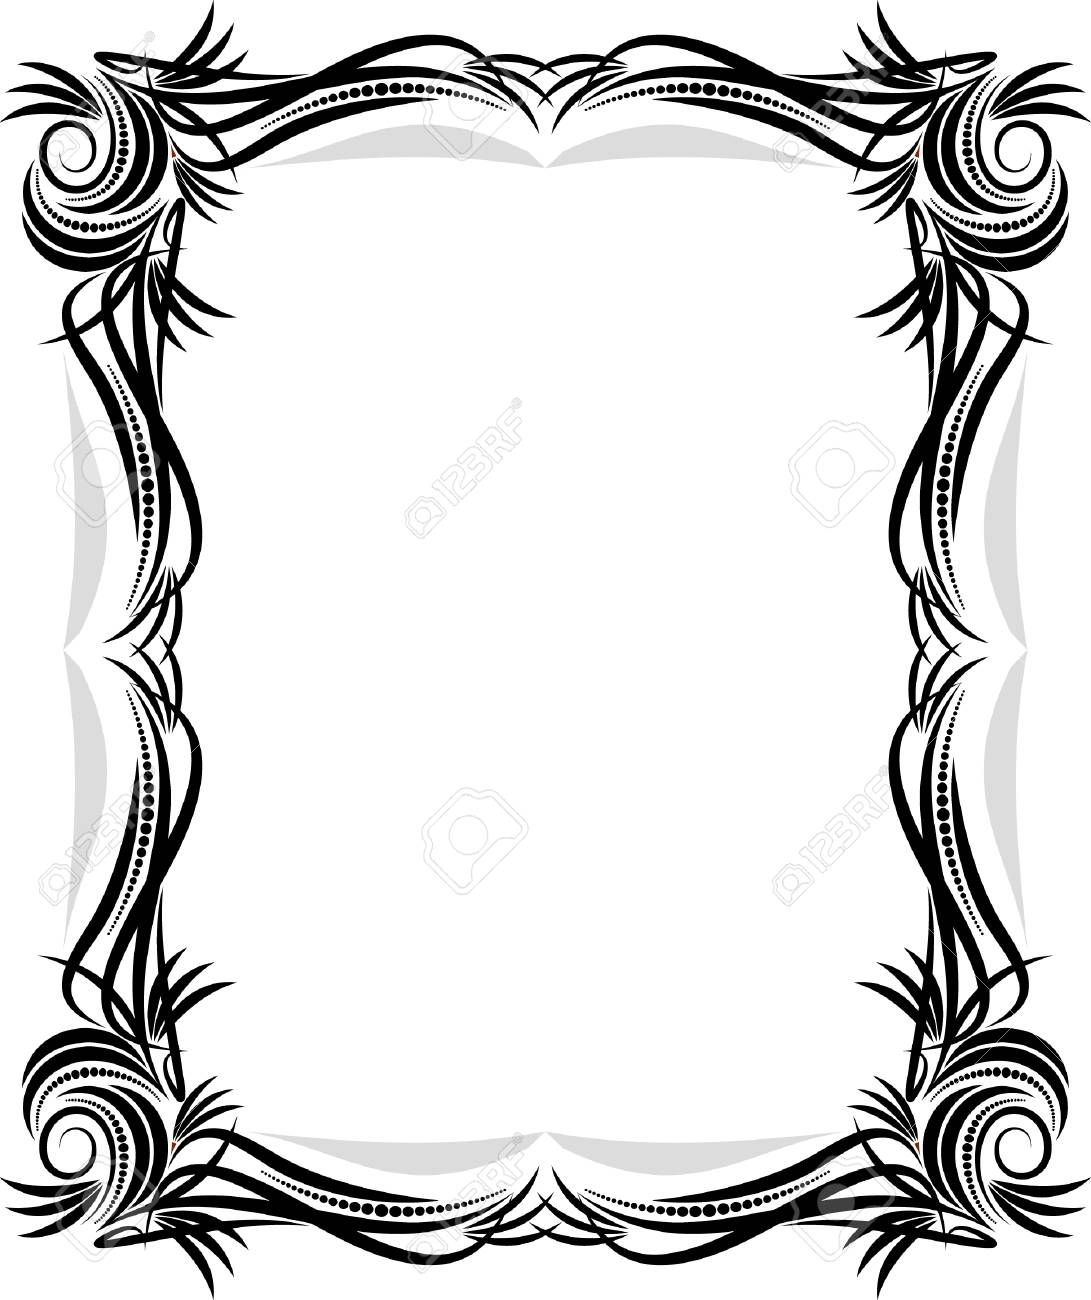 Classical Vector Frame. Royalty Free Cliparts, Vectors, And Stock ...